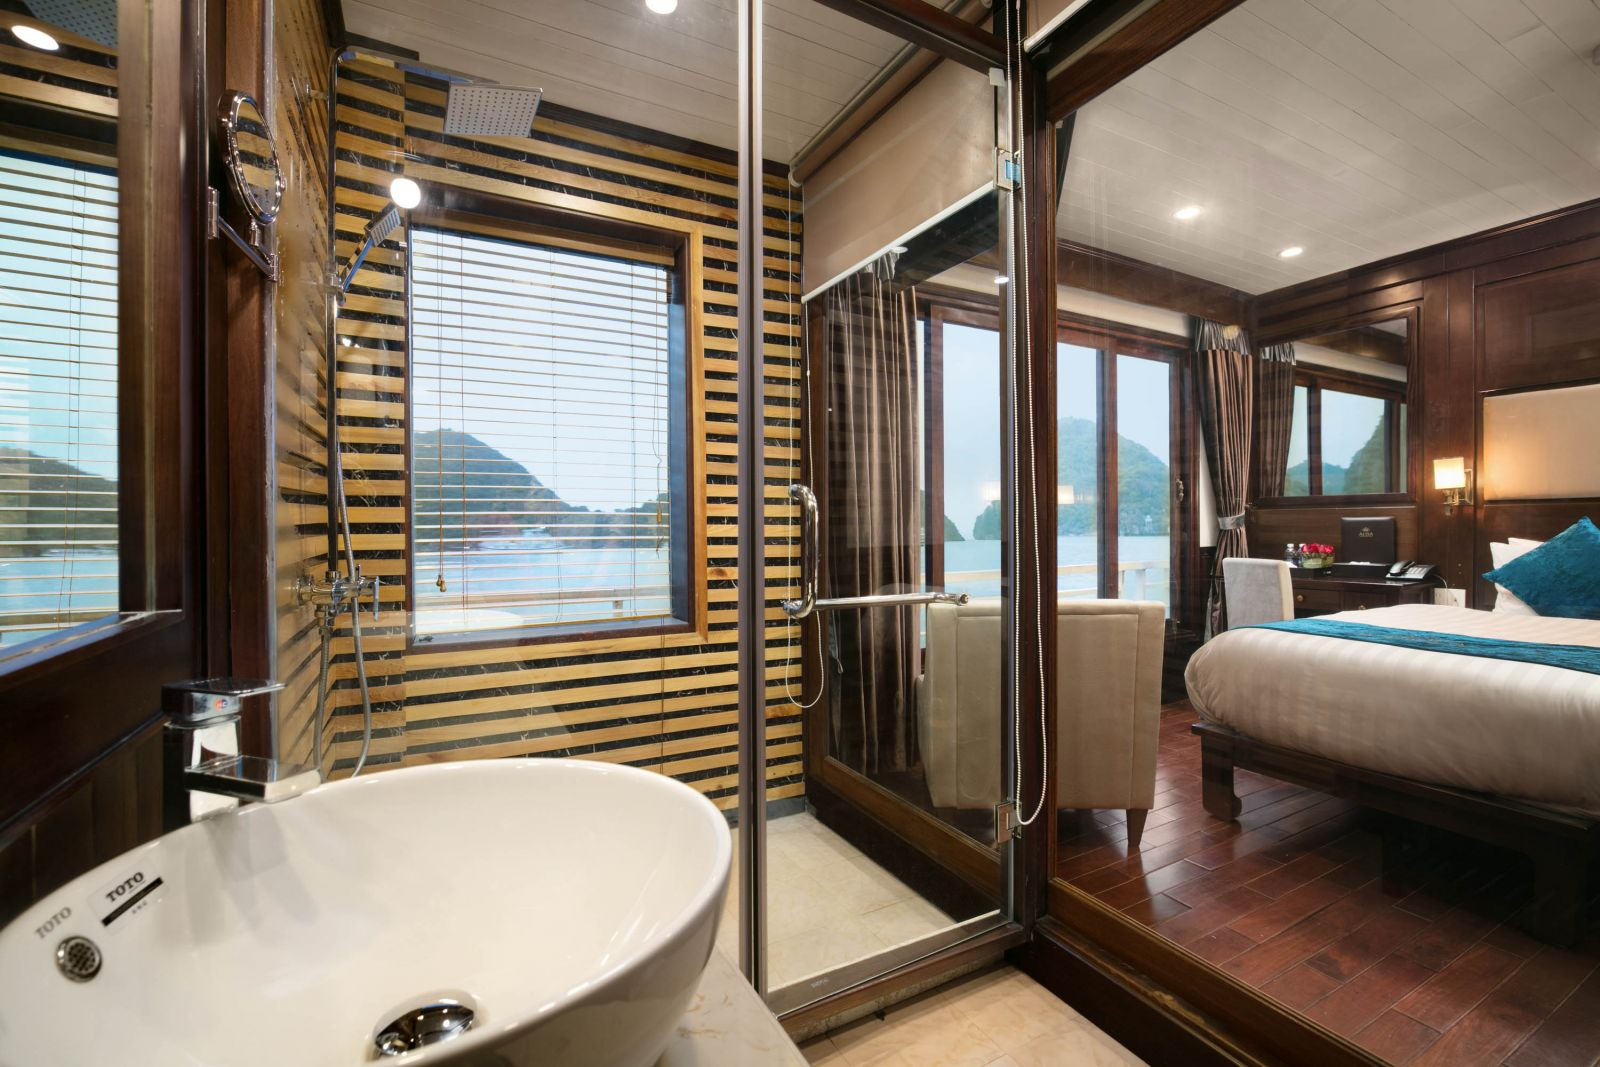 Luxury Bathroom on Alisa Cruise